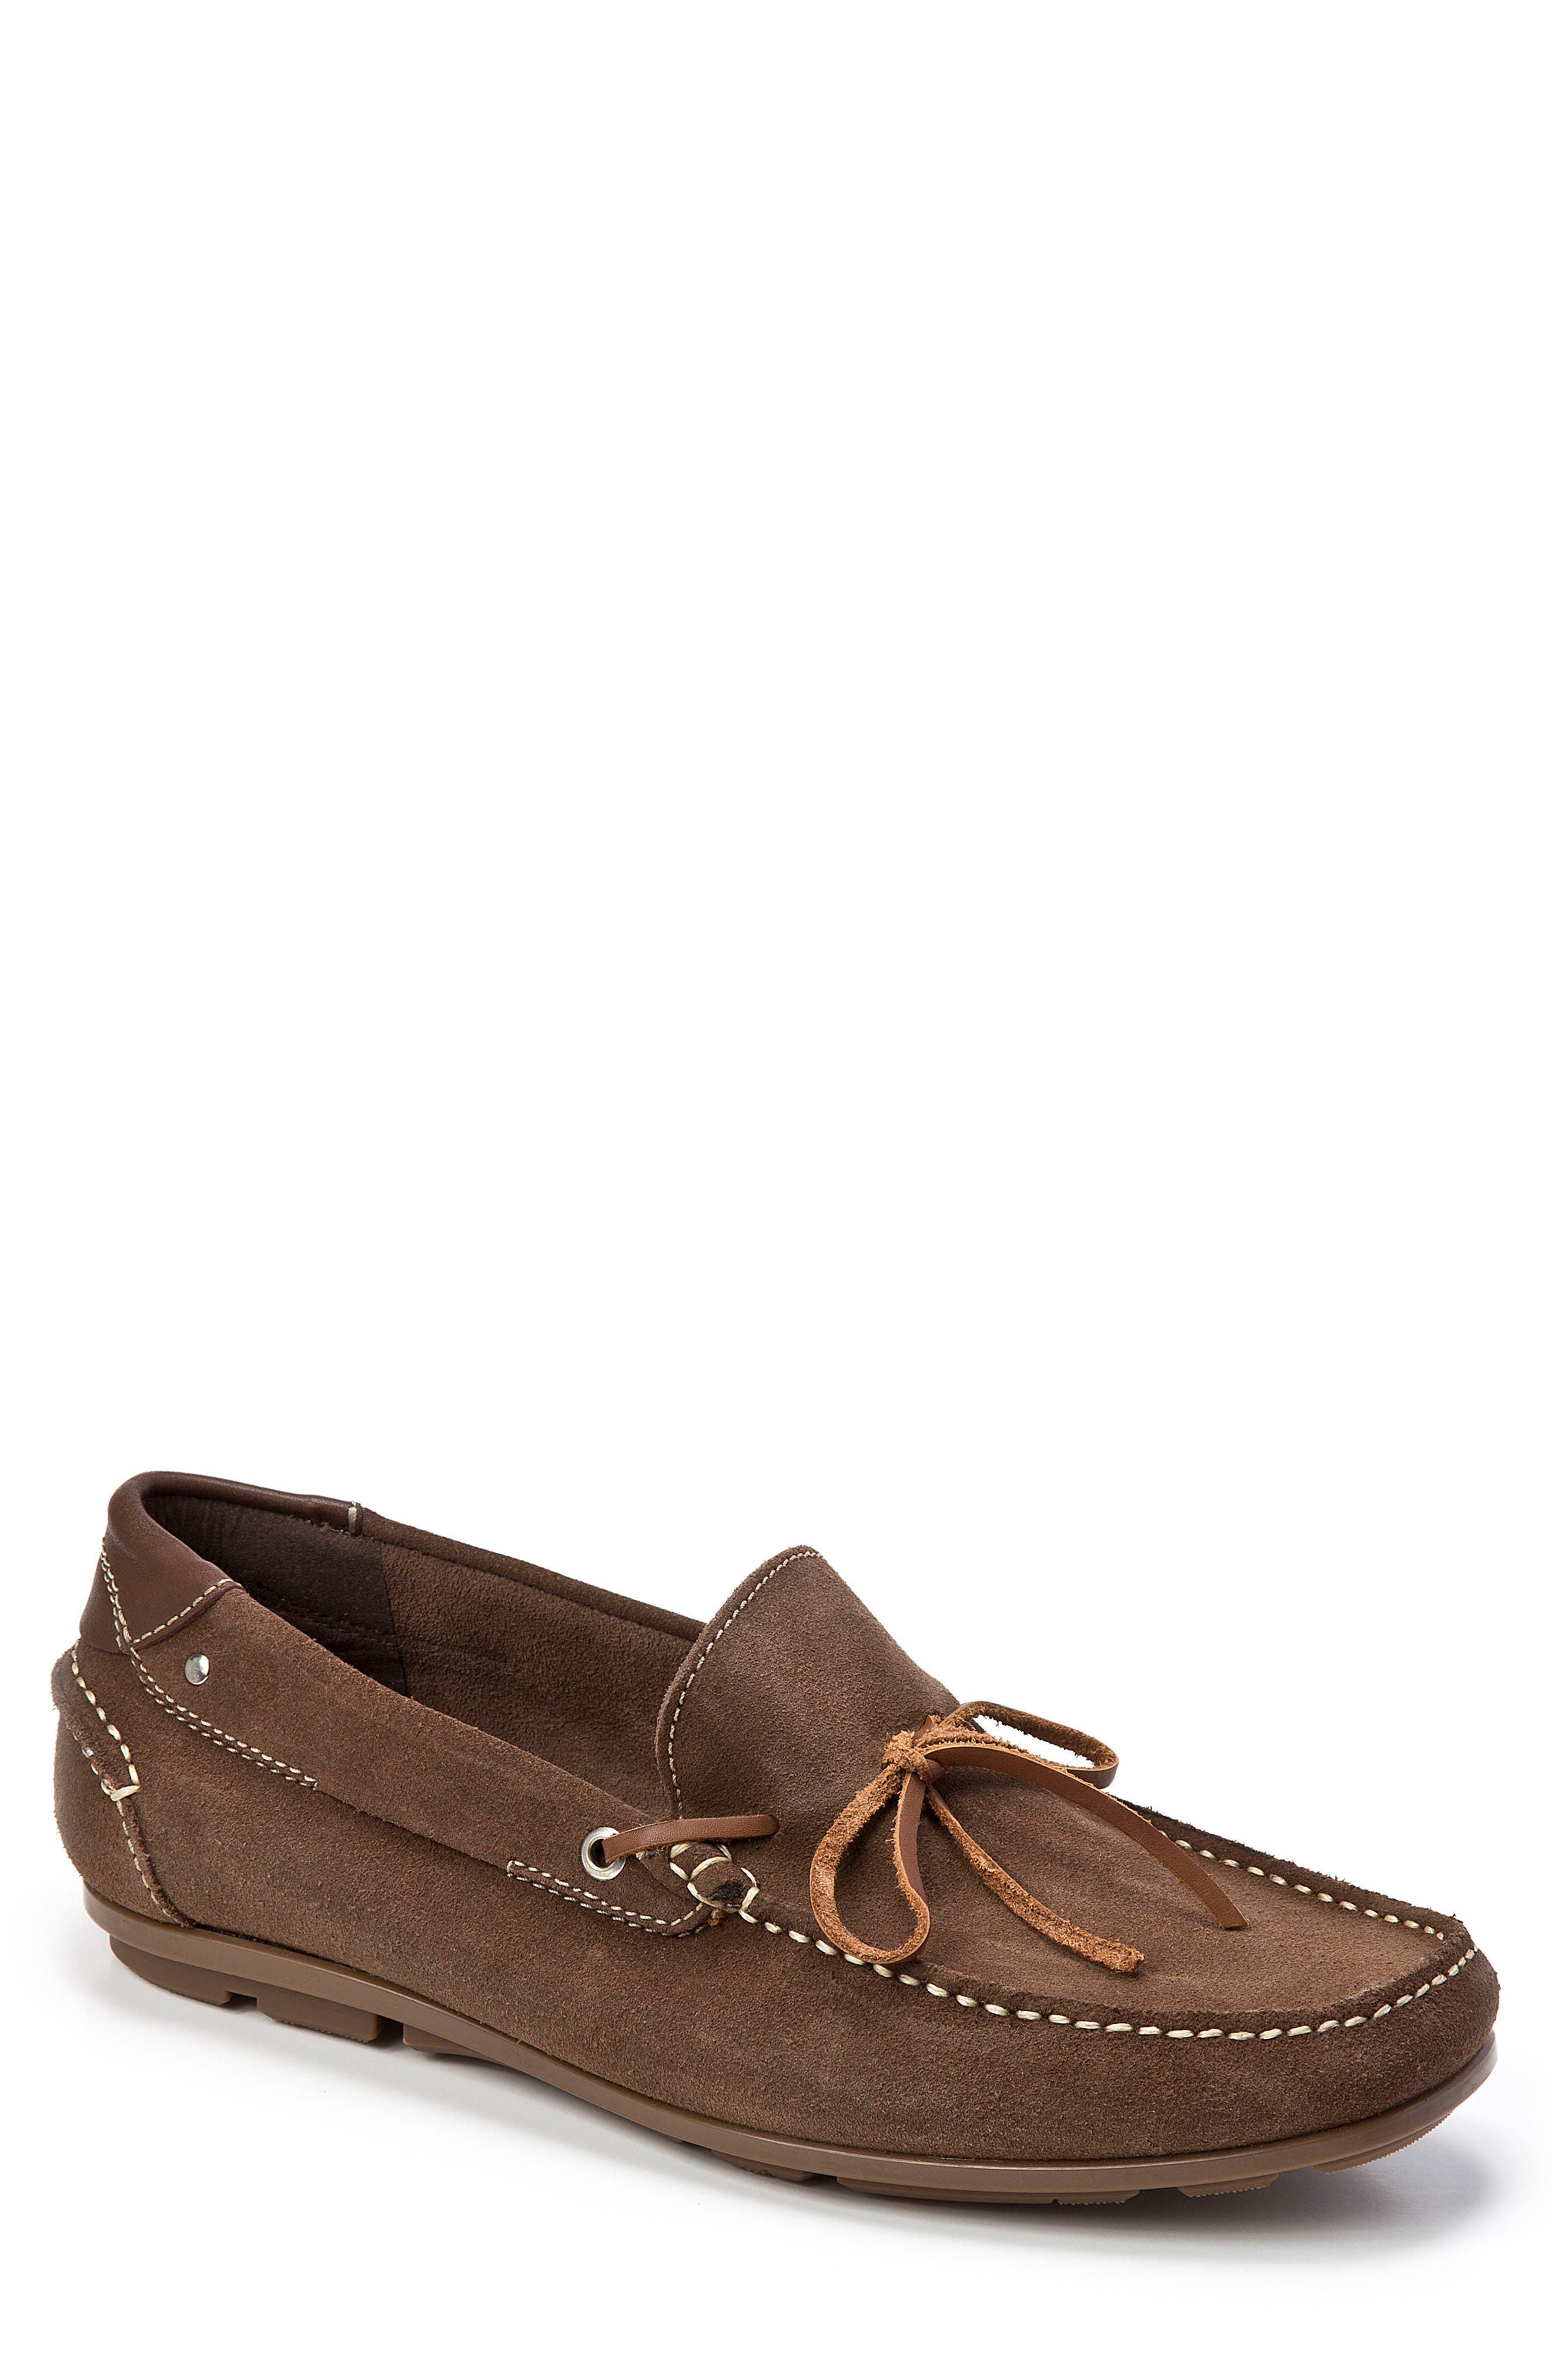 Andres Driving Moccasin,                         Main,                         color, BROWN